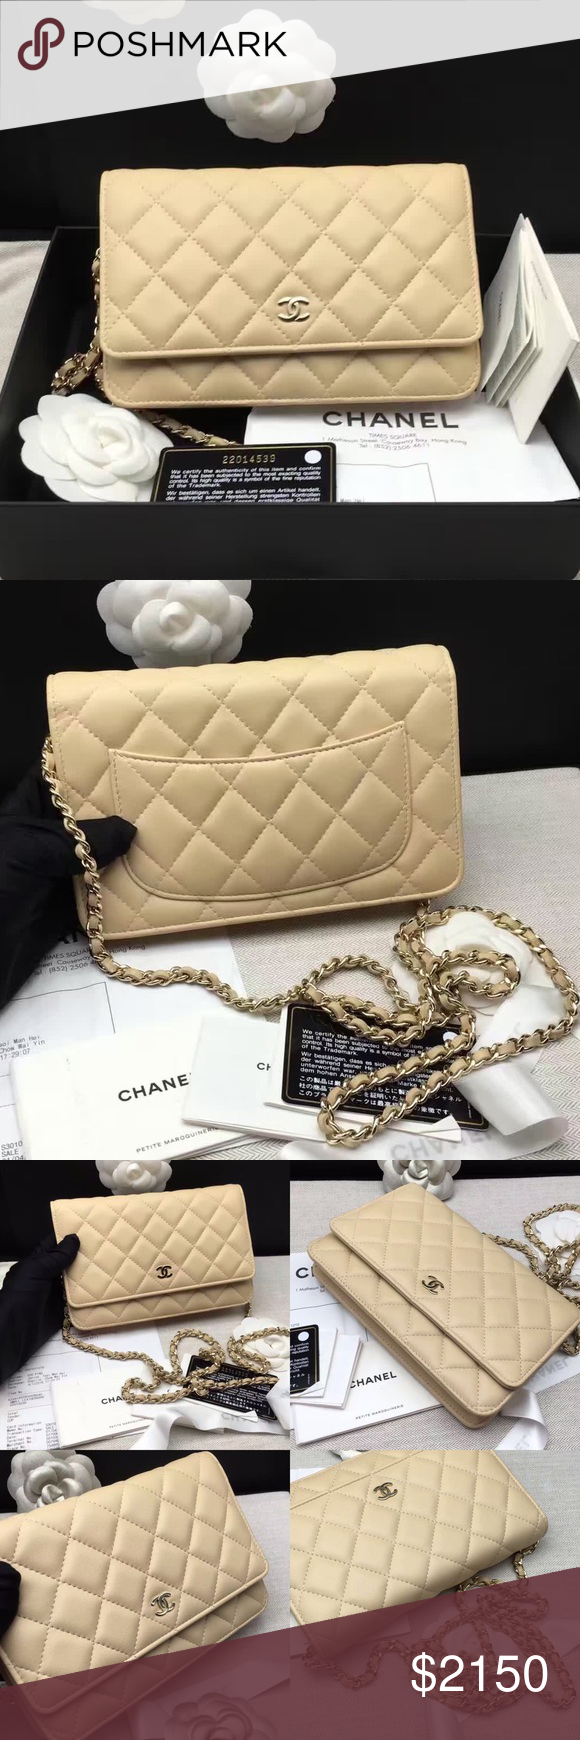 abea565941d7ea Auth Chanel 2016 NEW WOC Wallet on Chain Bag Beige Brand new in box Chanel  WOC